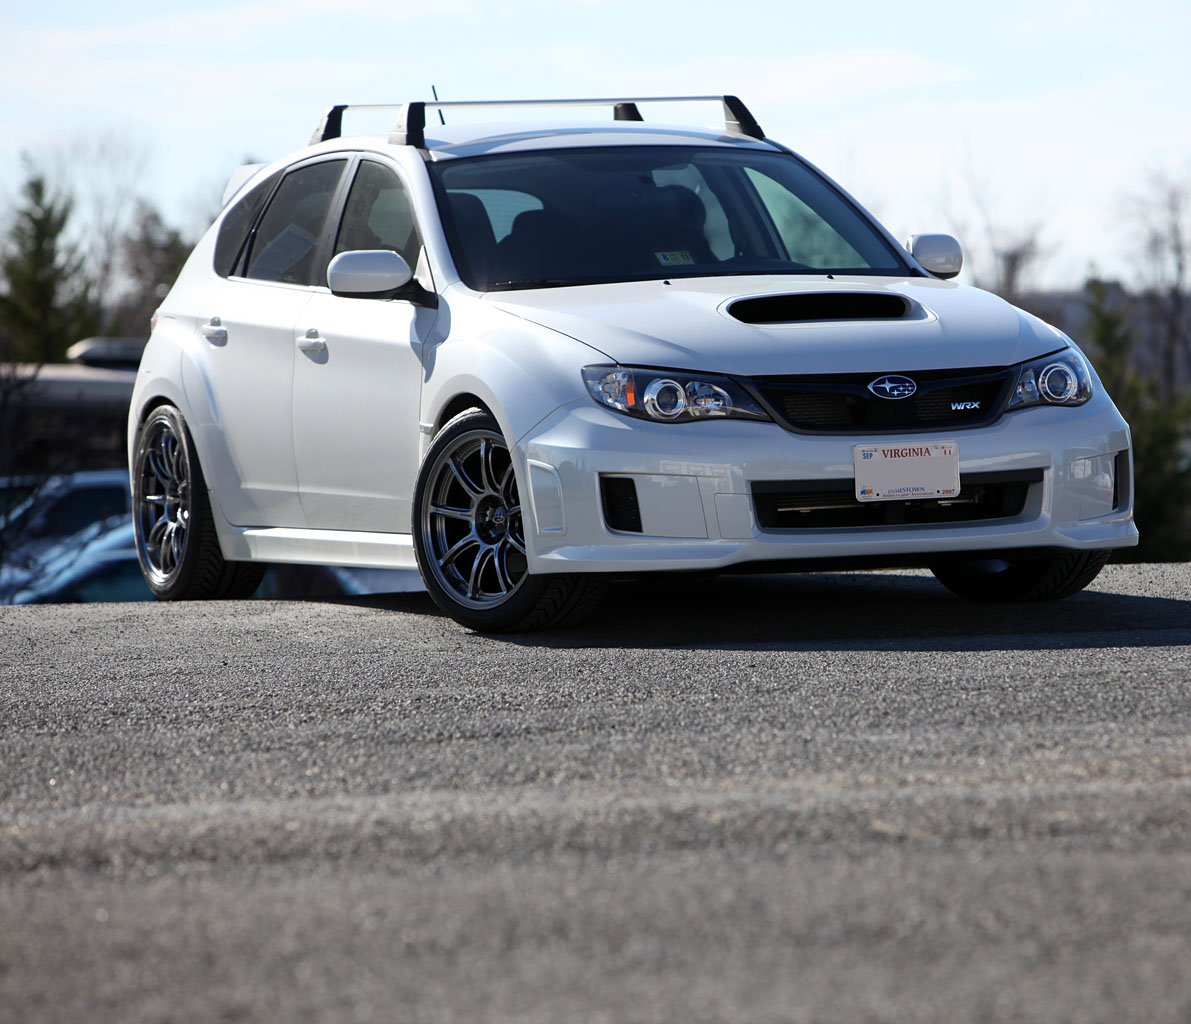 Guide to fitting wheels and tires to the 2011 2014 wrx nasioc 18x95 38 rota option 26535r18 michelin pilot as vanachro Images